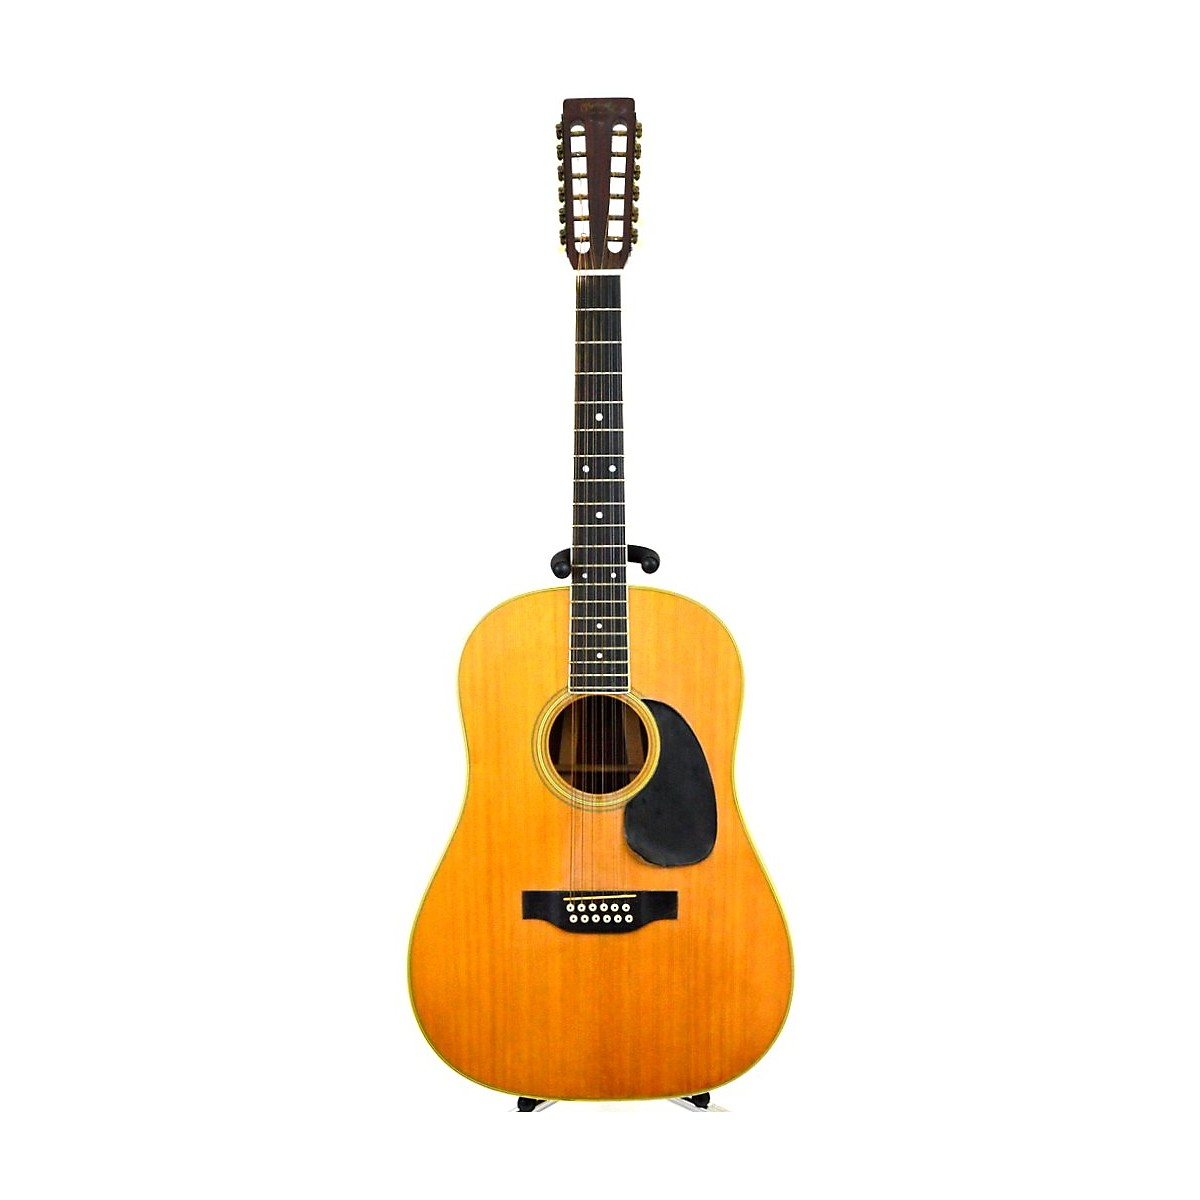 Martin 1967 D-12 35 12 String Acoustic Guitar